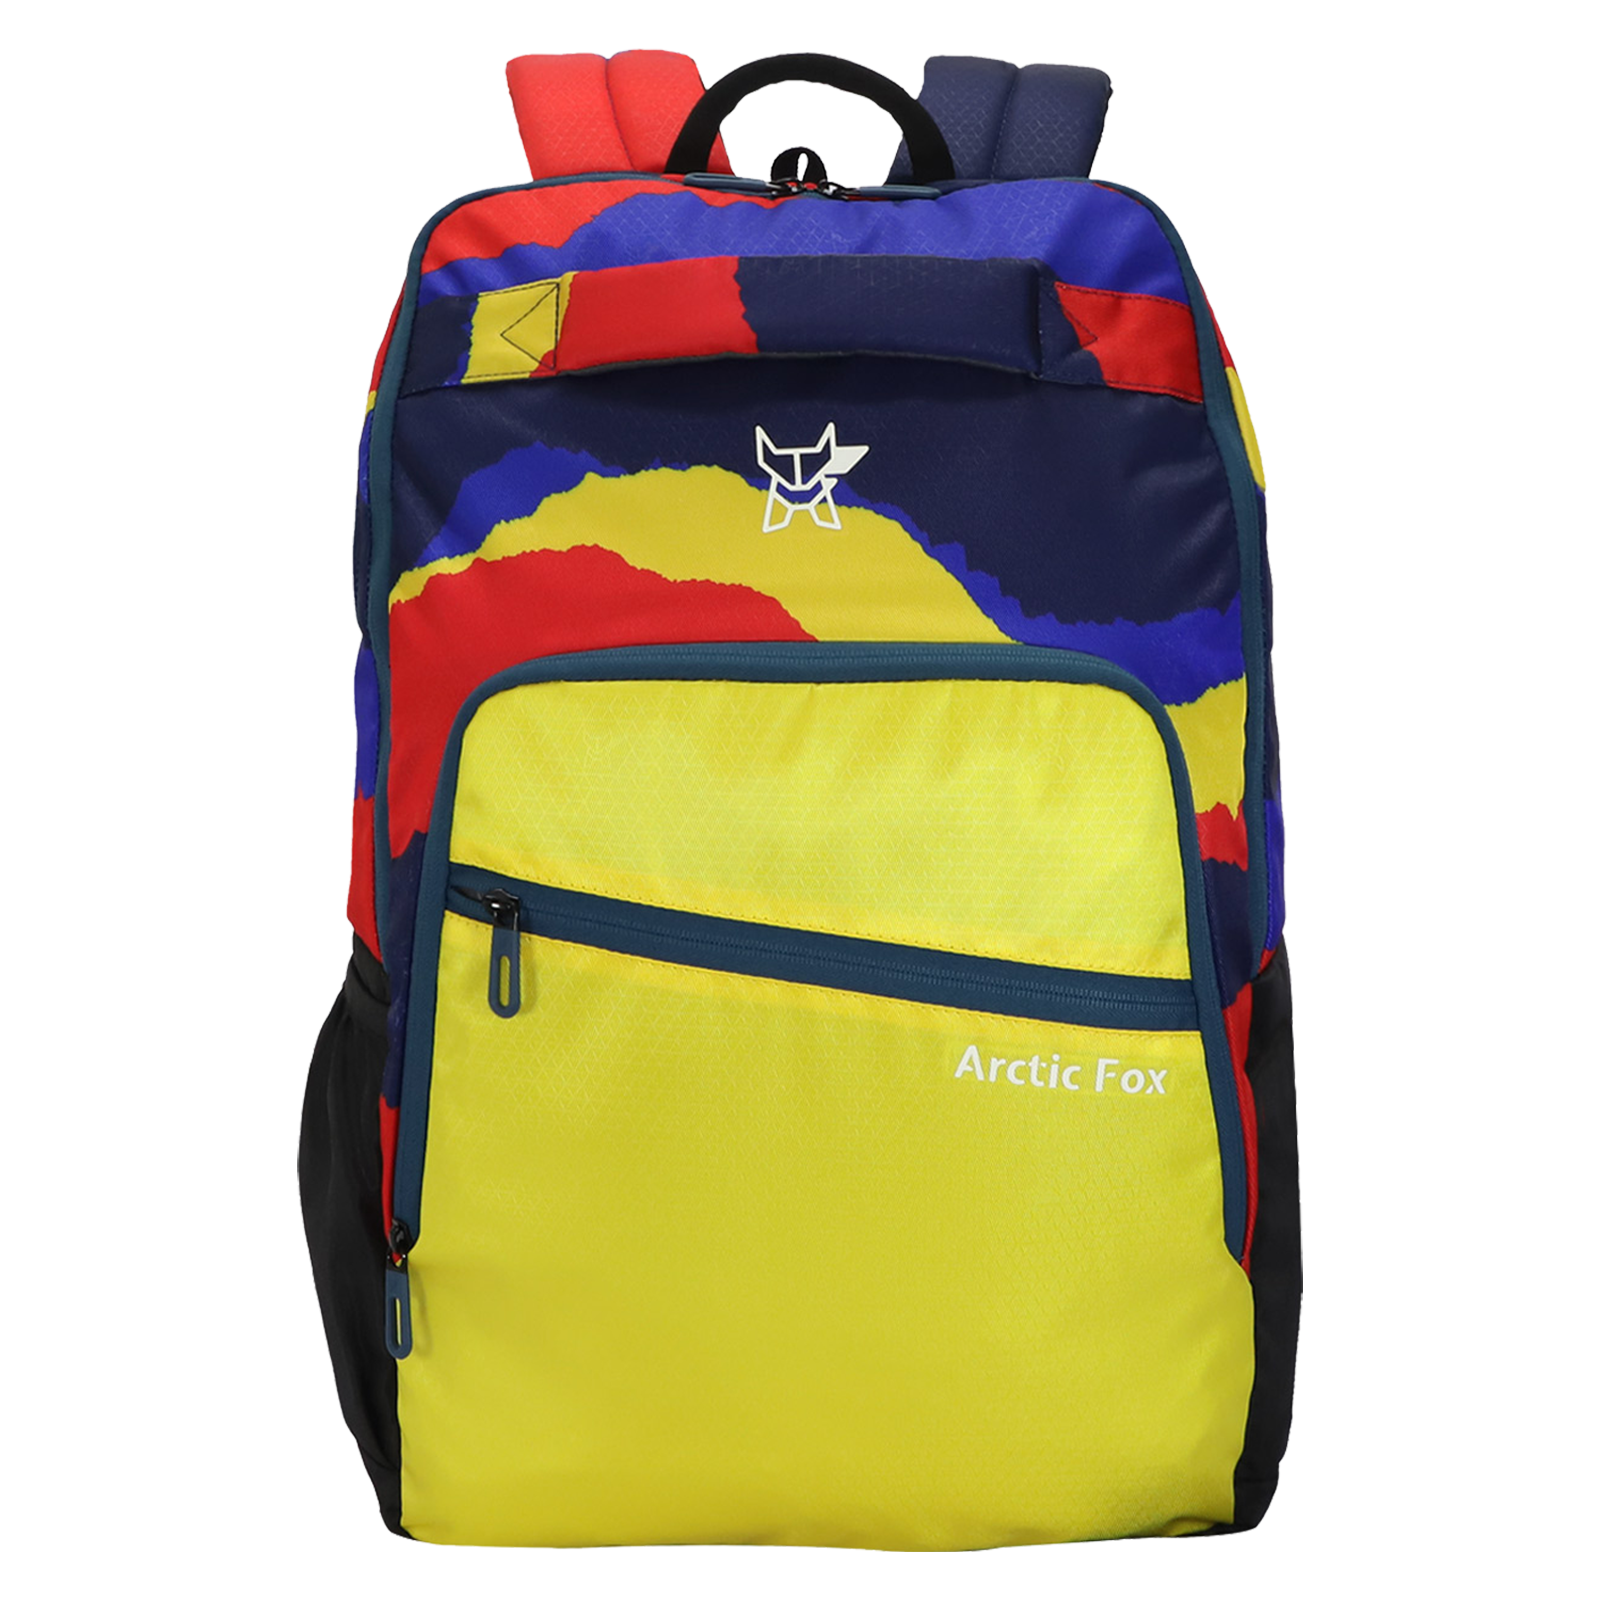 Arctic Fox Color Paper 23.5 Litres PU Coated Polyester Backpack (Smart Organizer, FUNBPKVYLON090024, Yellow)_1